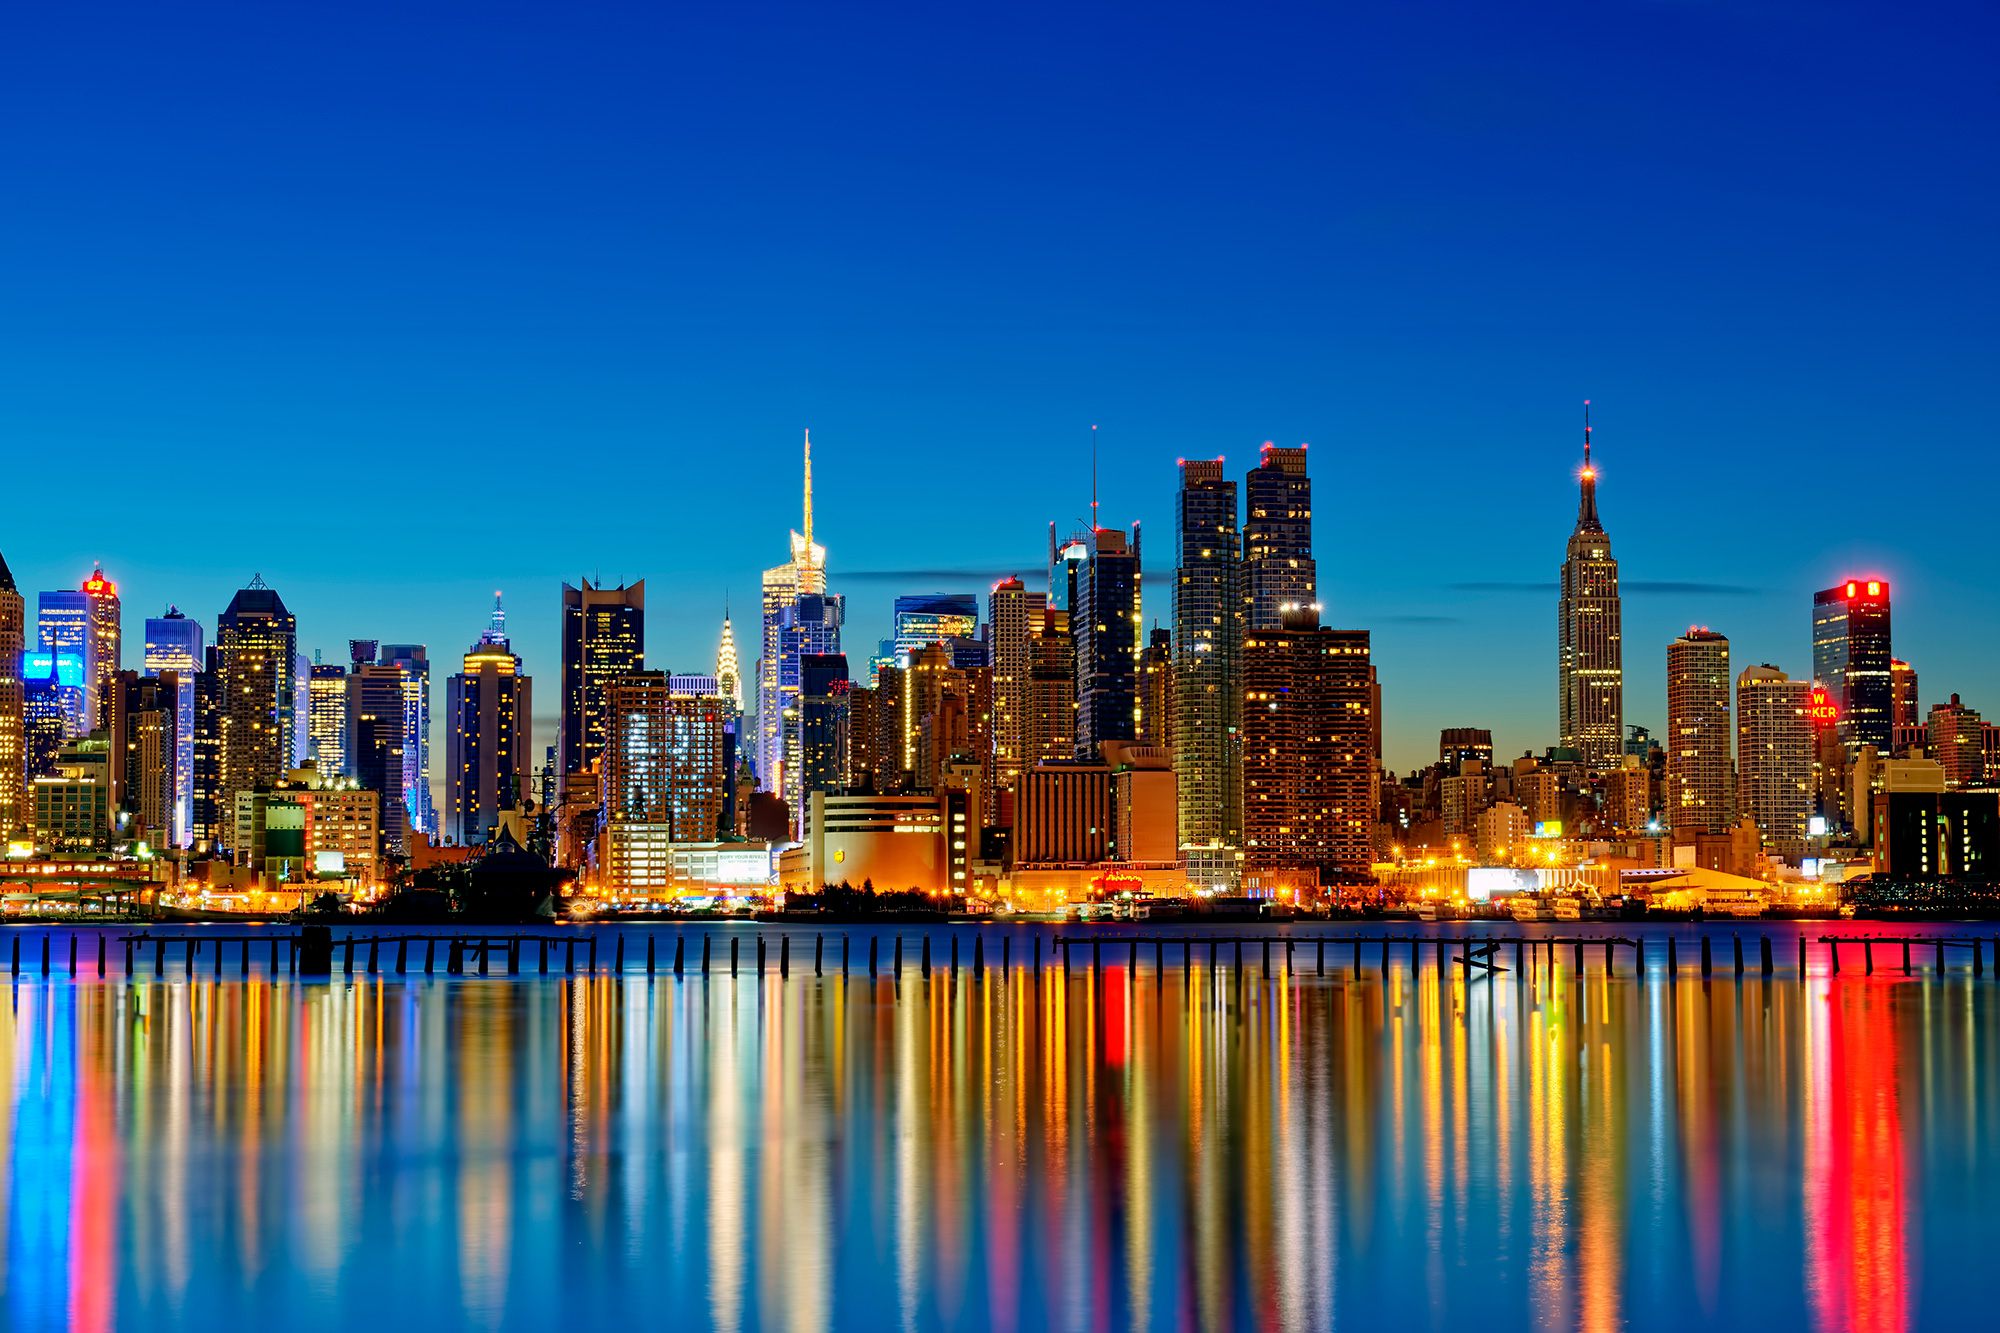 new york city lights  free images at clker  vector